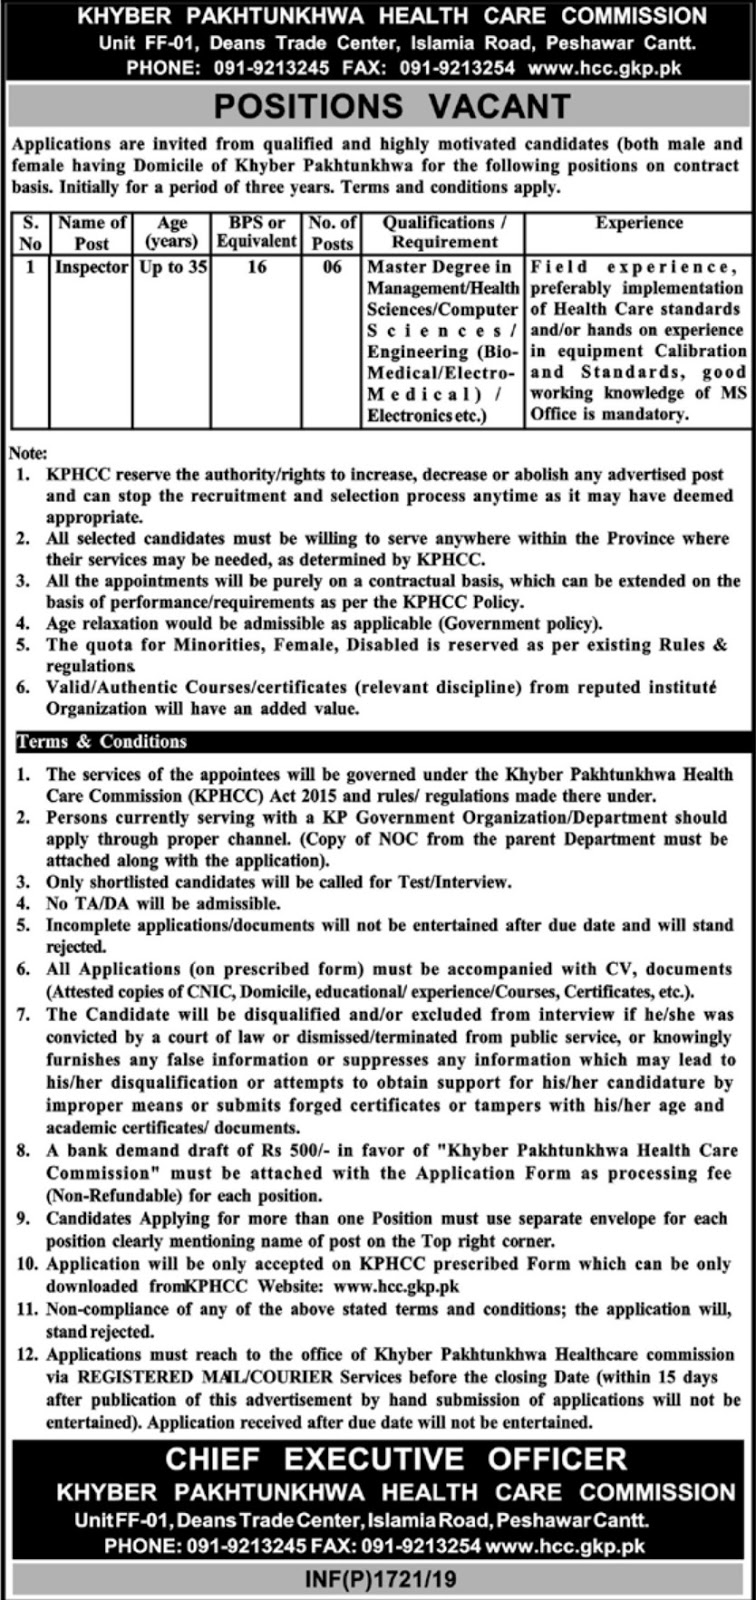 KPHCC Jobs 2019 For Inspector | Khyber Pakhtunkhwa Health Care Commission